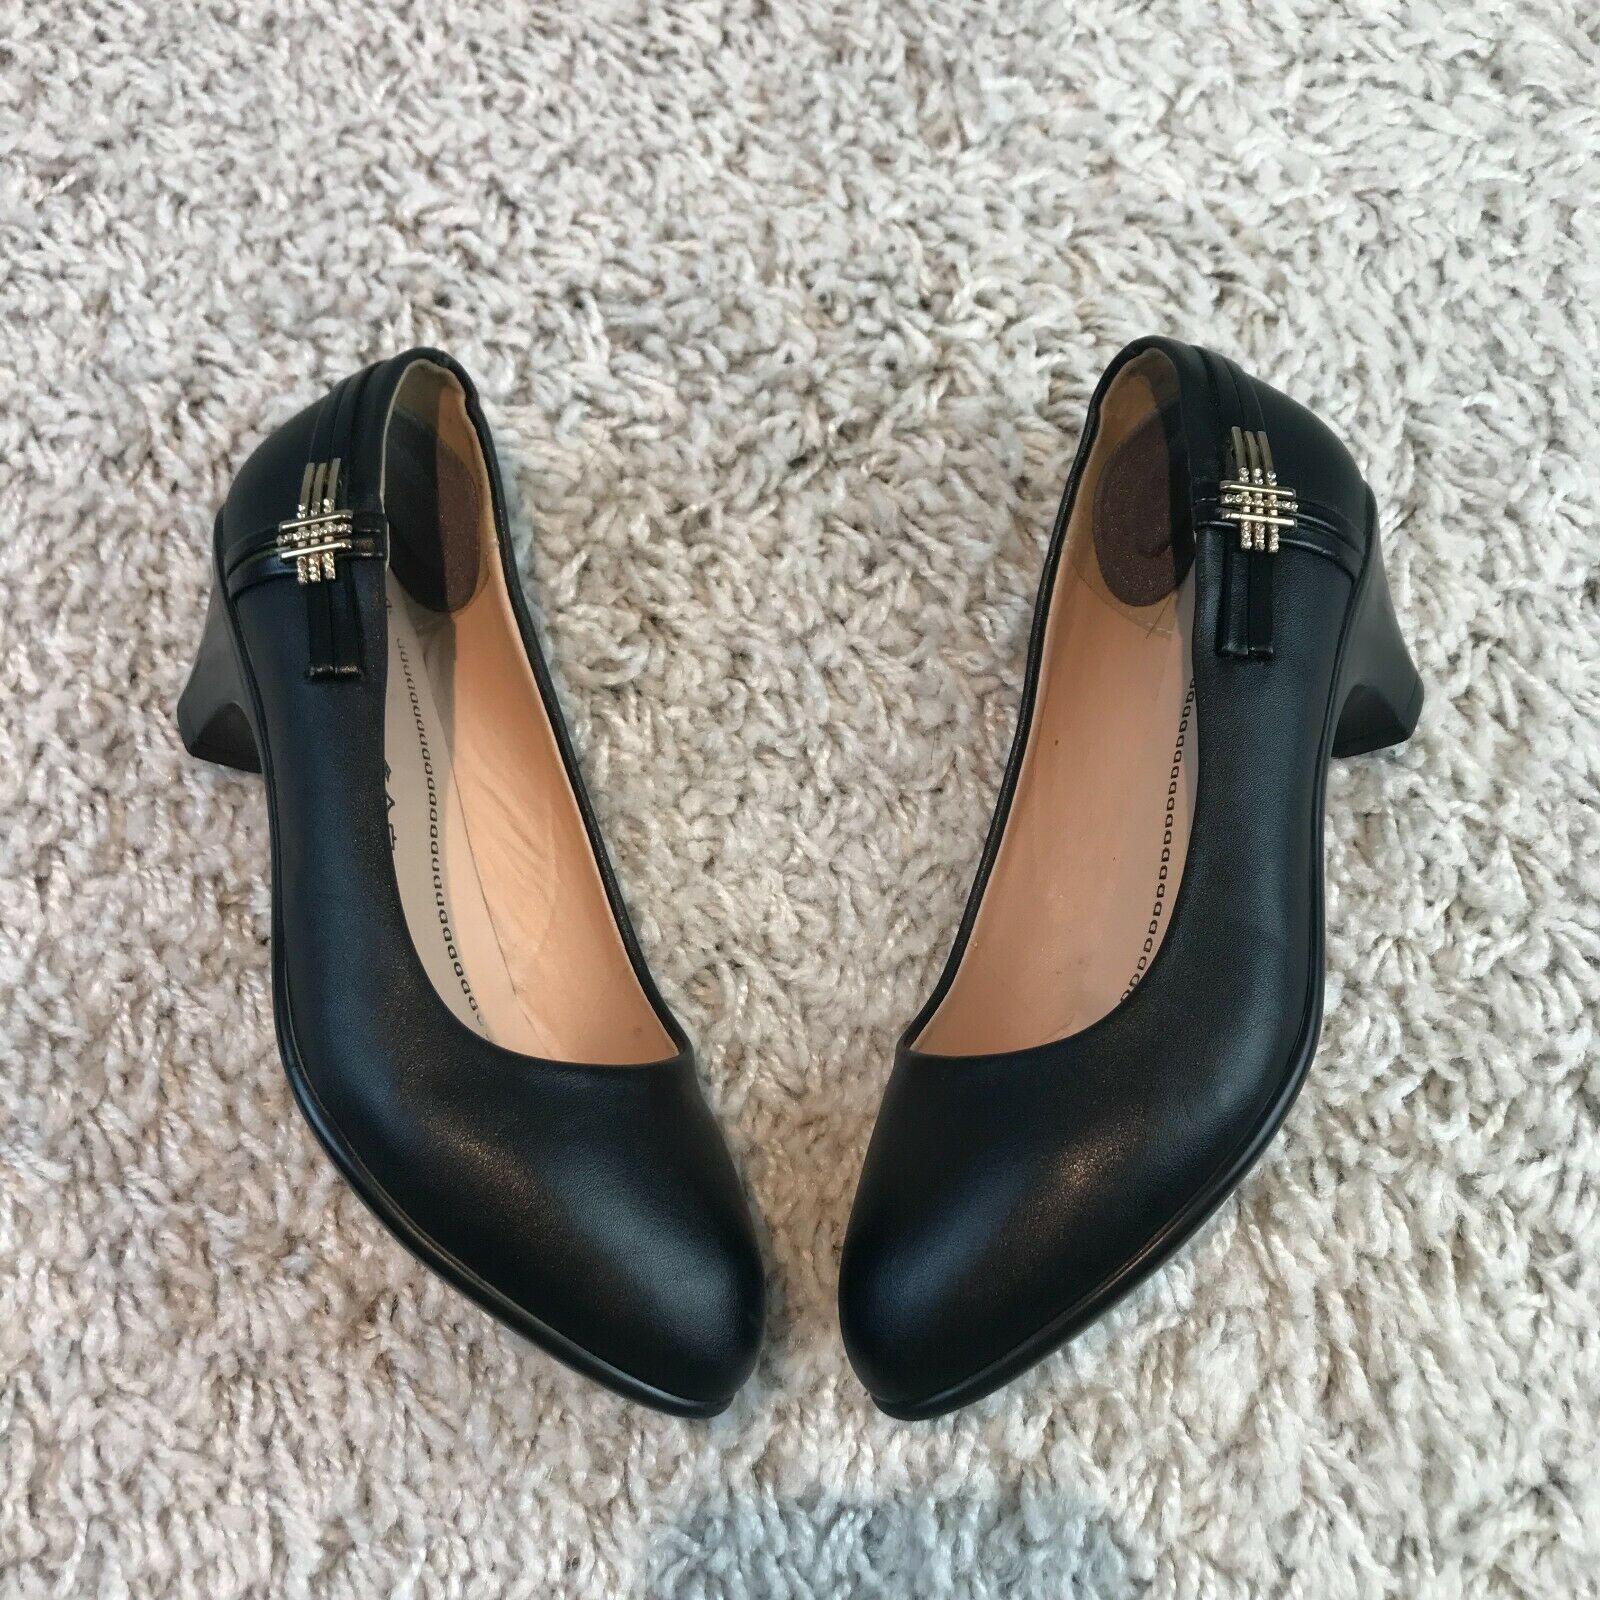 Womens Shoes UK 4 Eur 37 Black Leather Jewelled Court Shoes